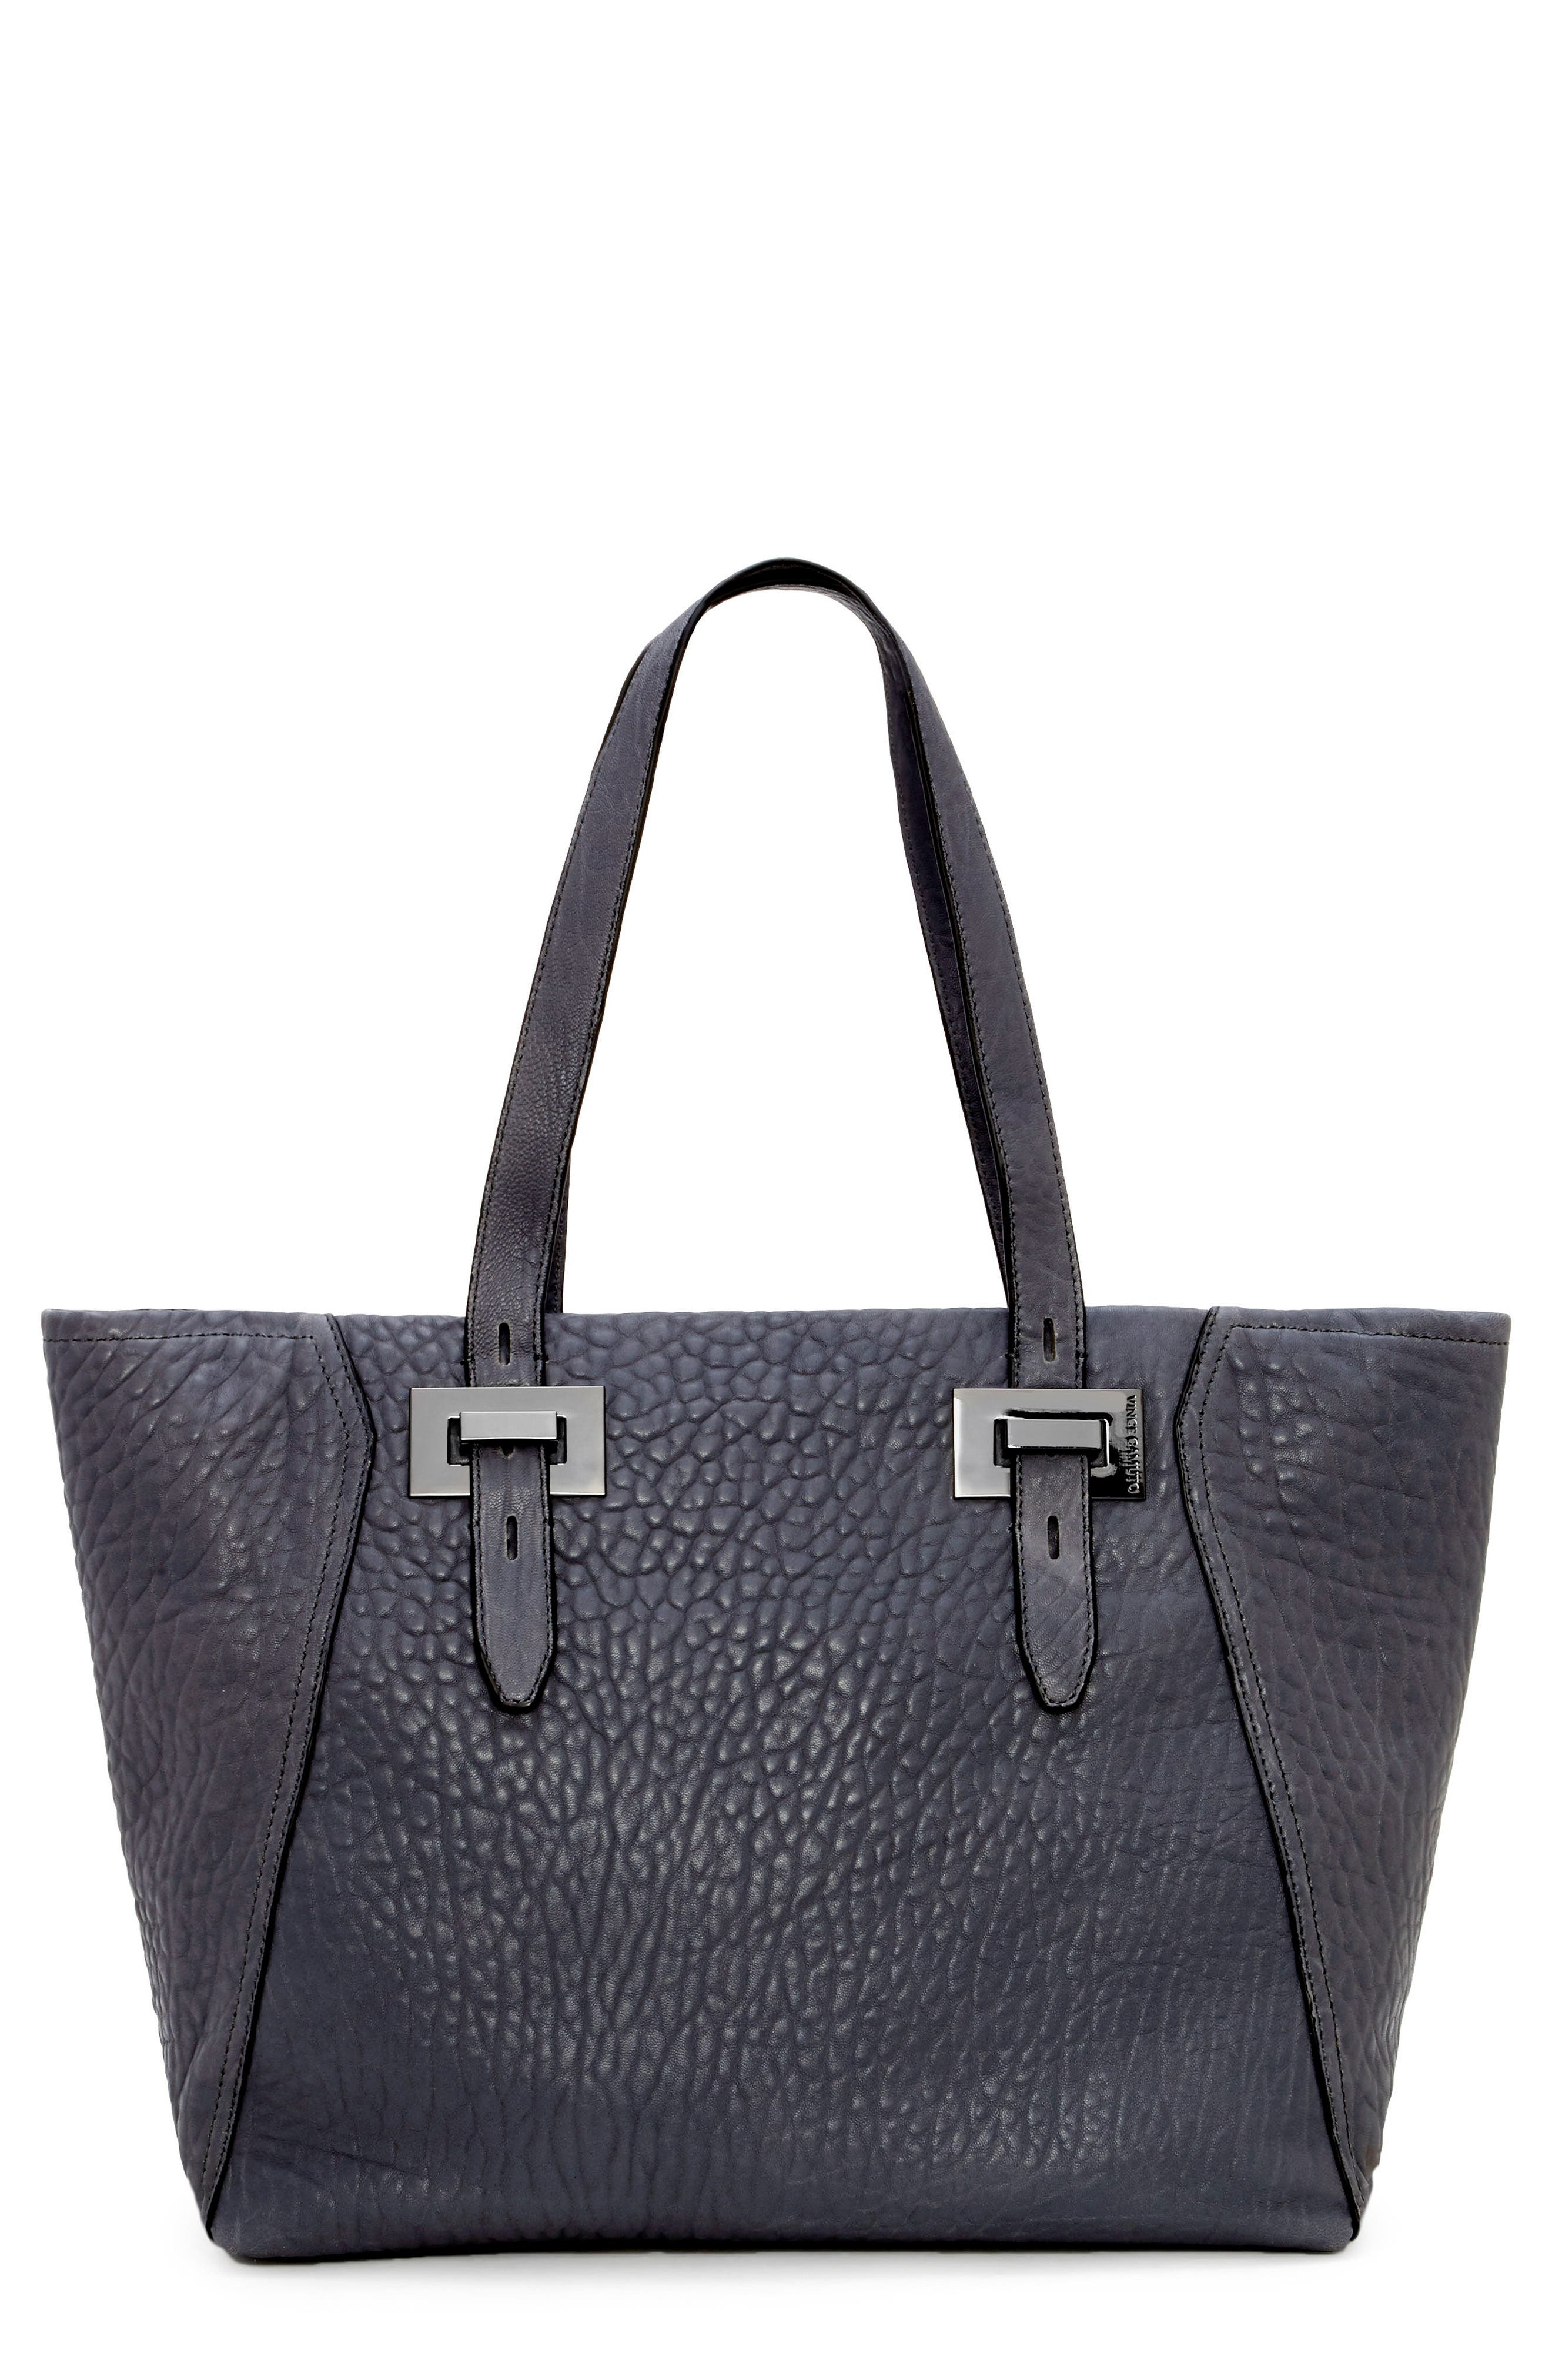 Alternate Image 1 Selected - Vince Camuto Fava Lambskin Leather Tote